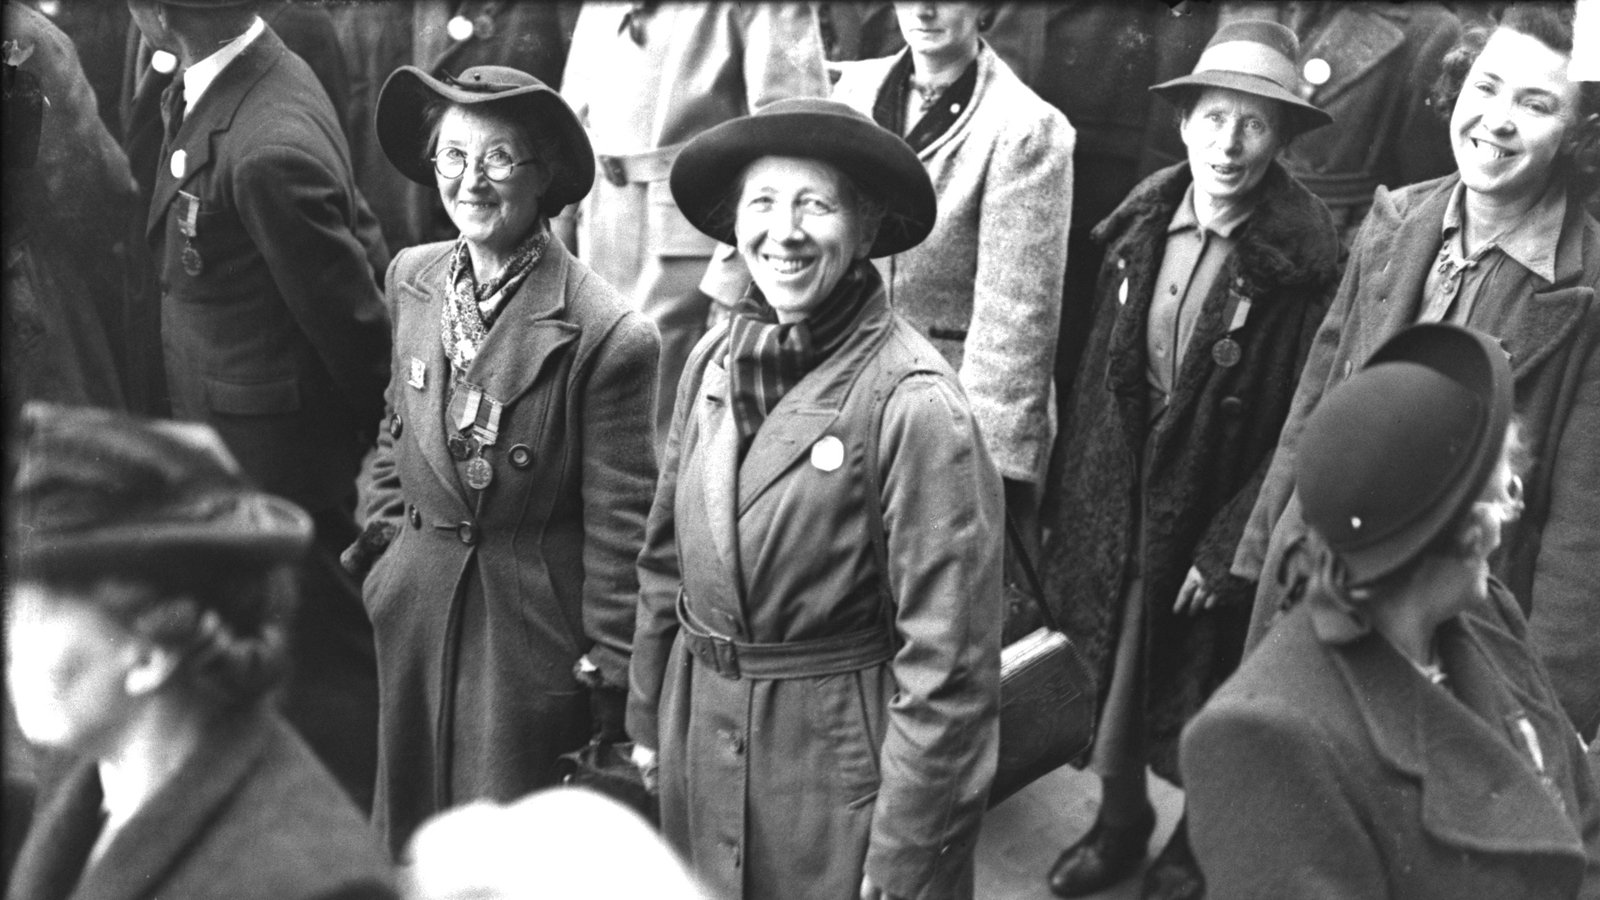 Image - Maire Comerford (centre), seen here c.1940s, was very active during the War of Independence